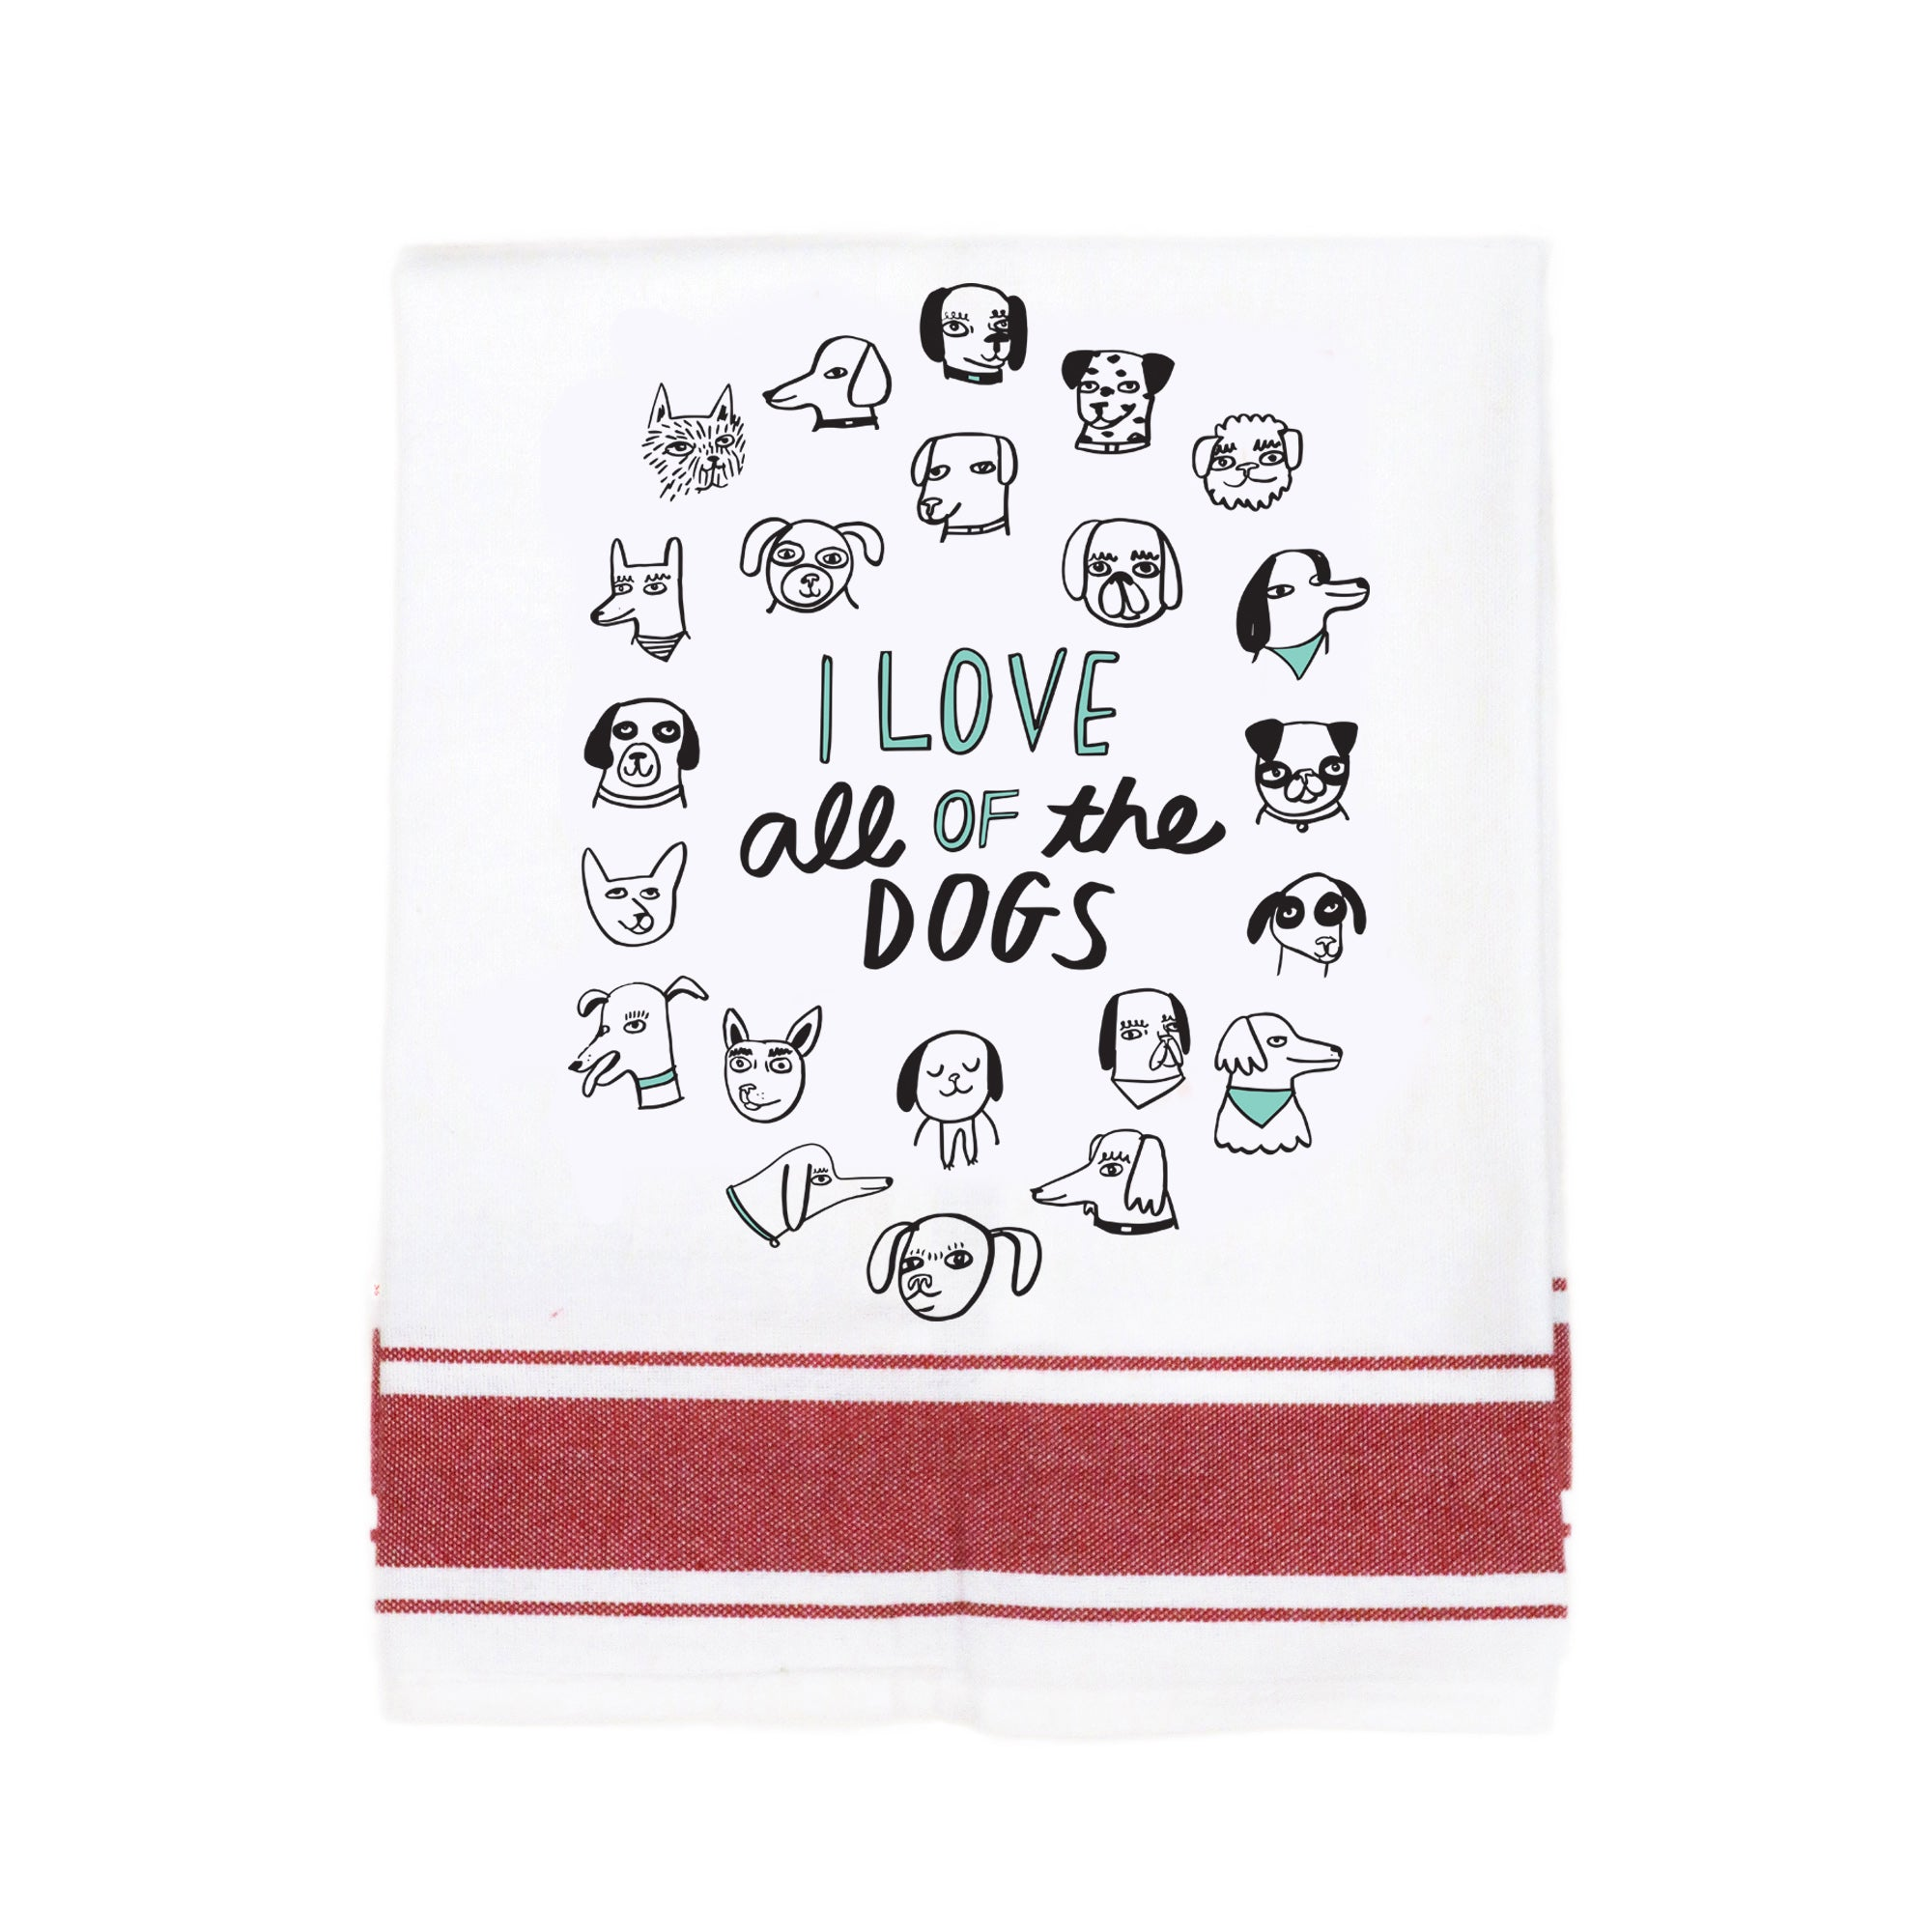 I Love All of the Dogs Make Original Kitchen Towel